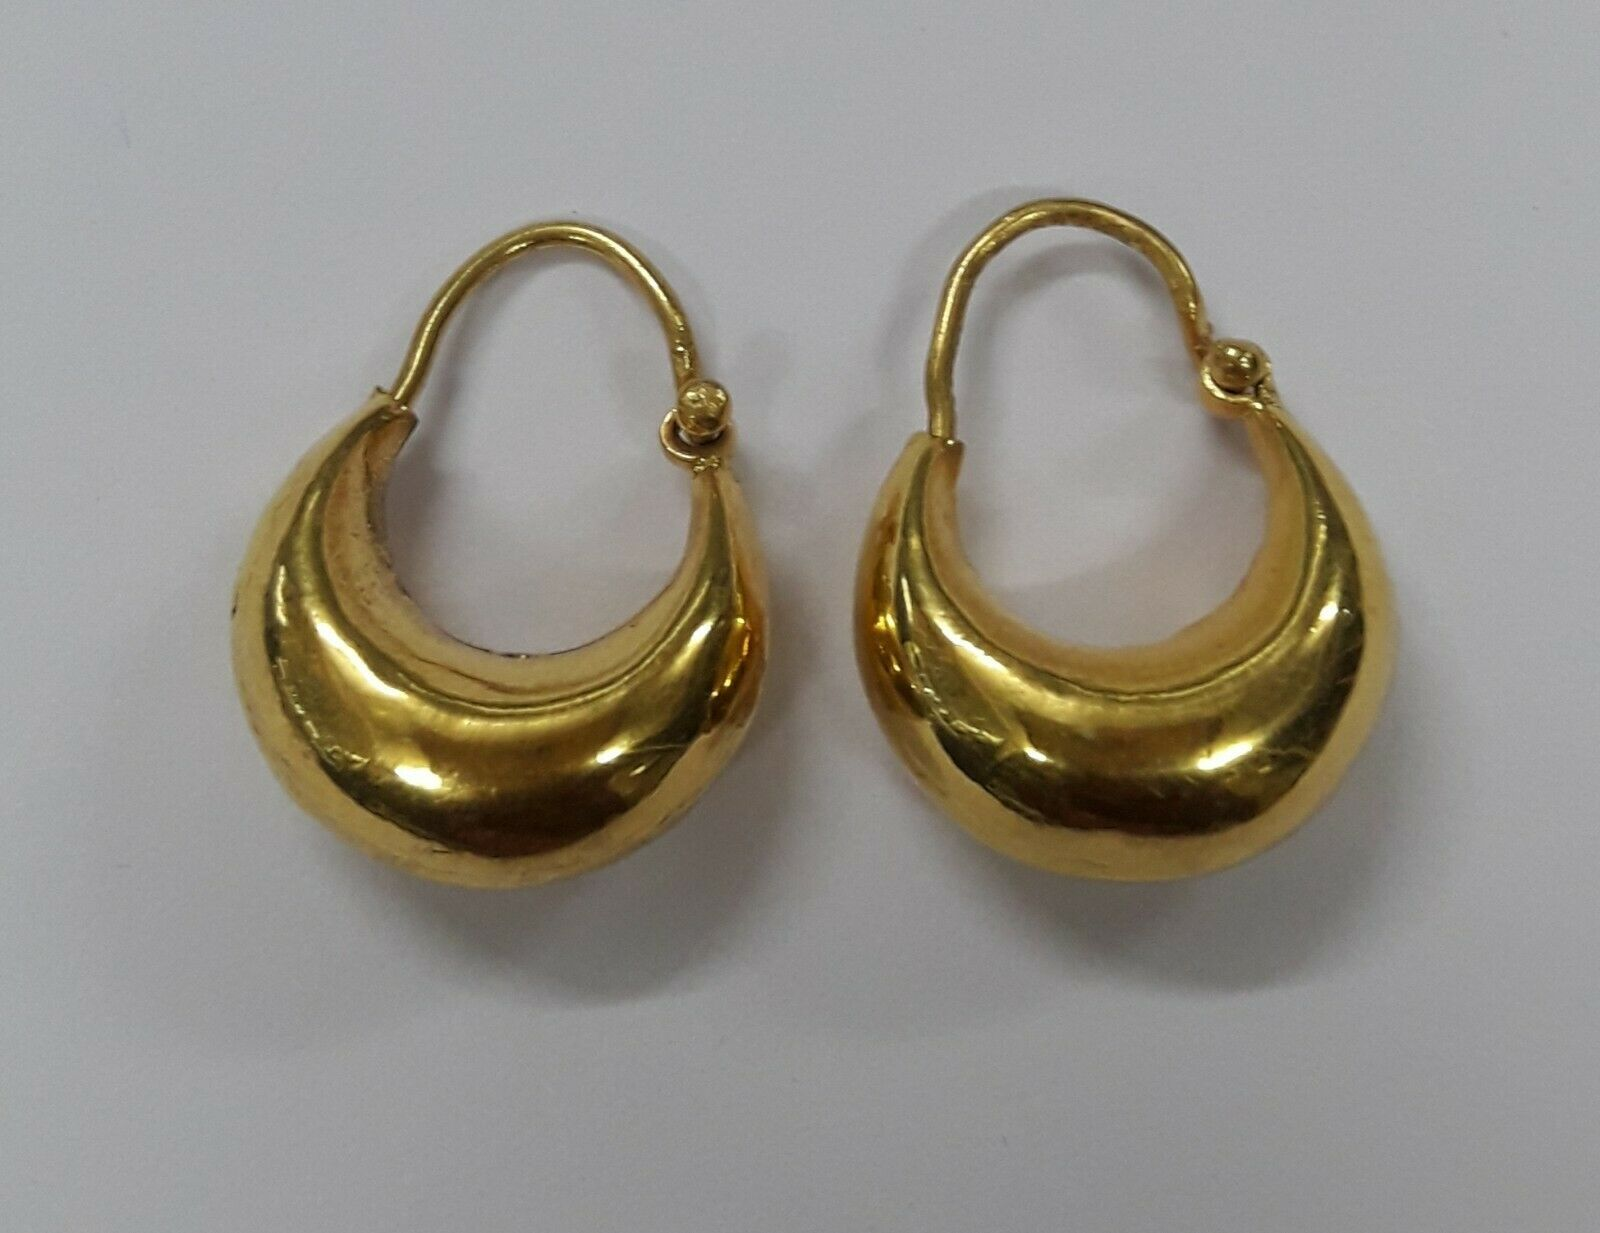 Primary image for 22kt gold hoop earrings earring pair vintage tribal jewelry handmade Chand Bali